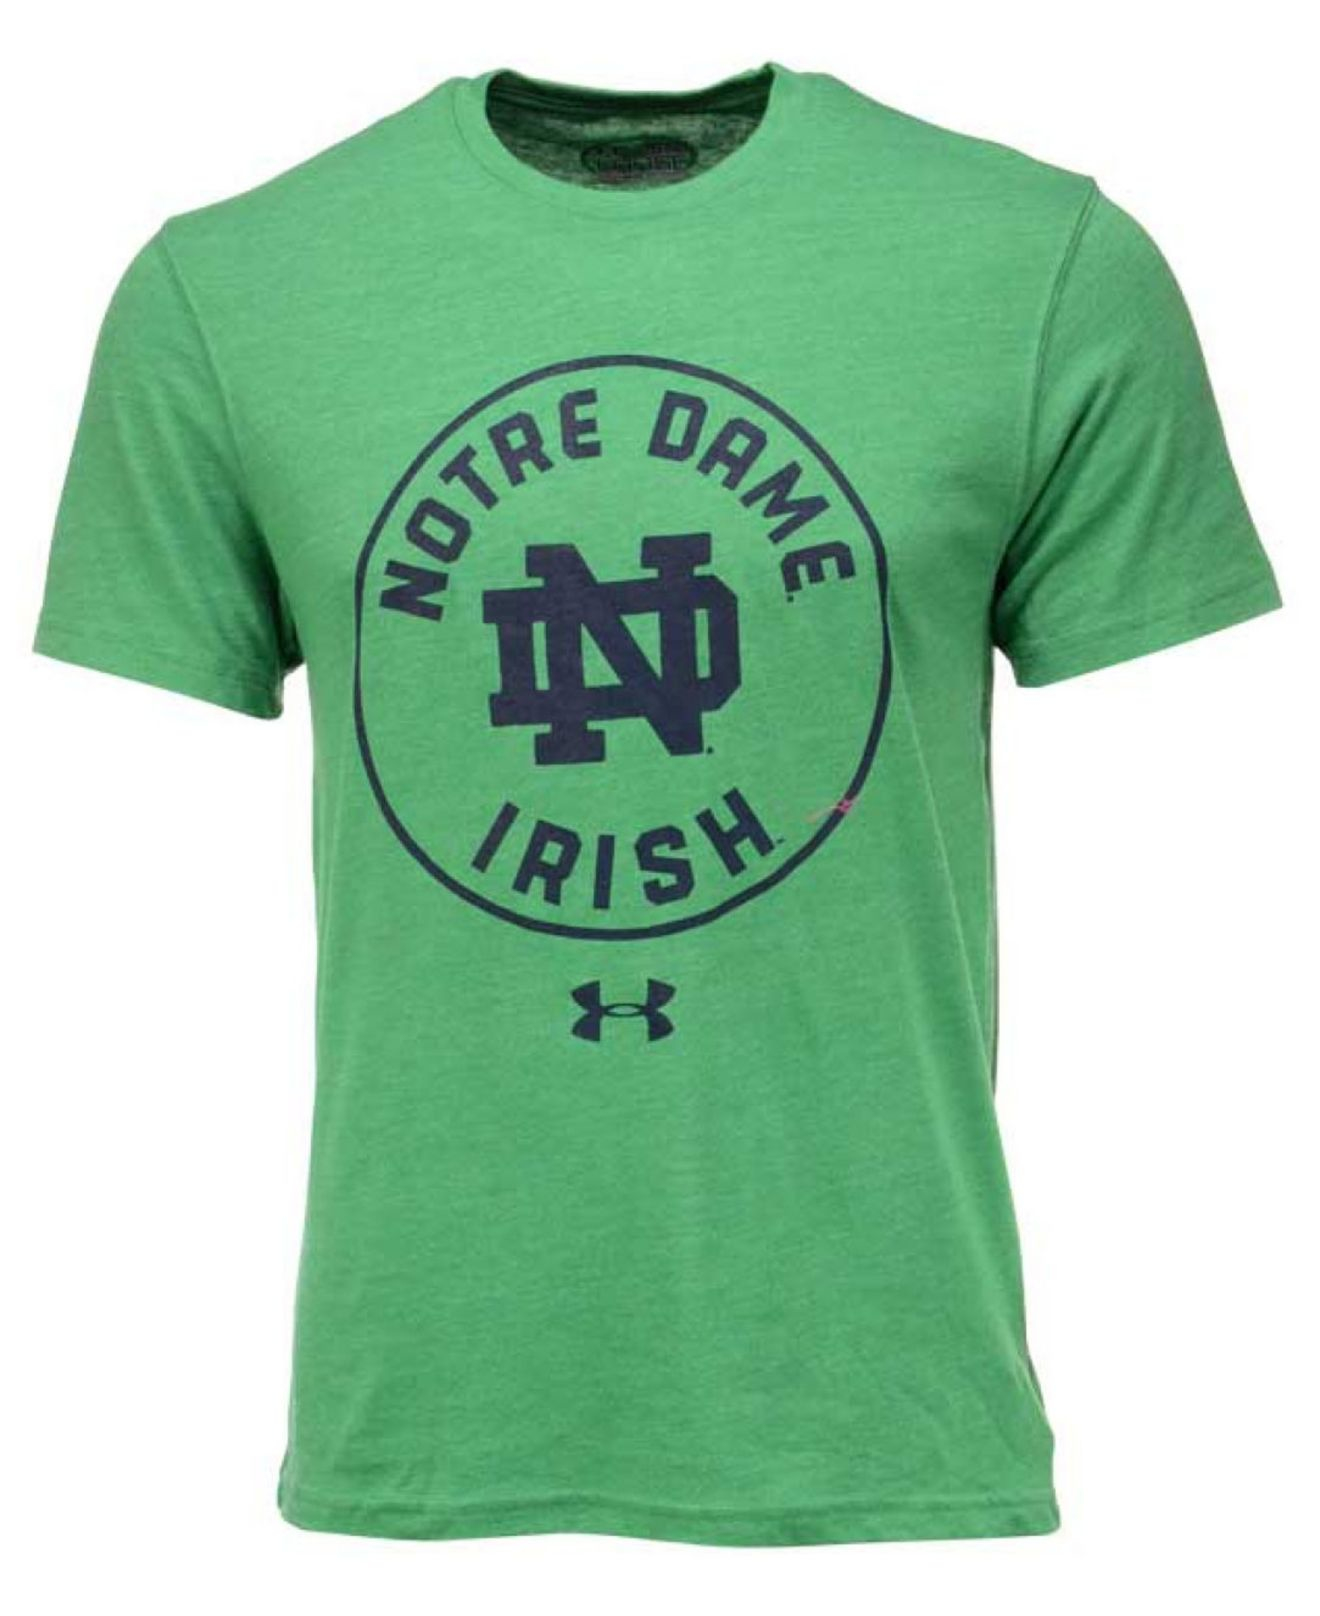 Under armour men 39 s notre dame fighting irish legacy t for Notre dame tee shirts